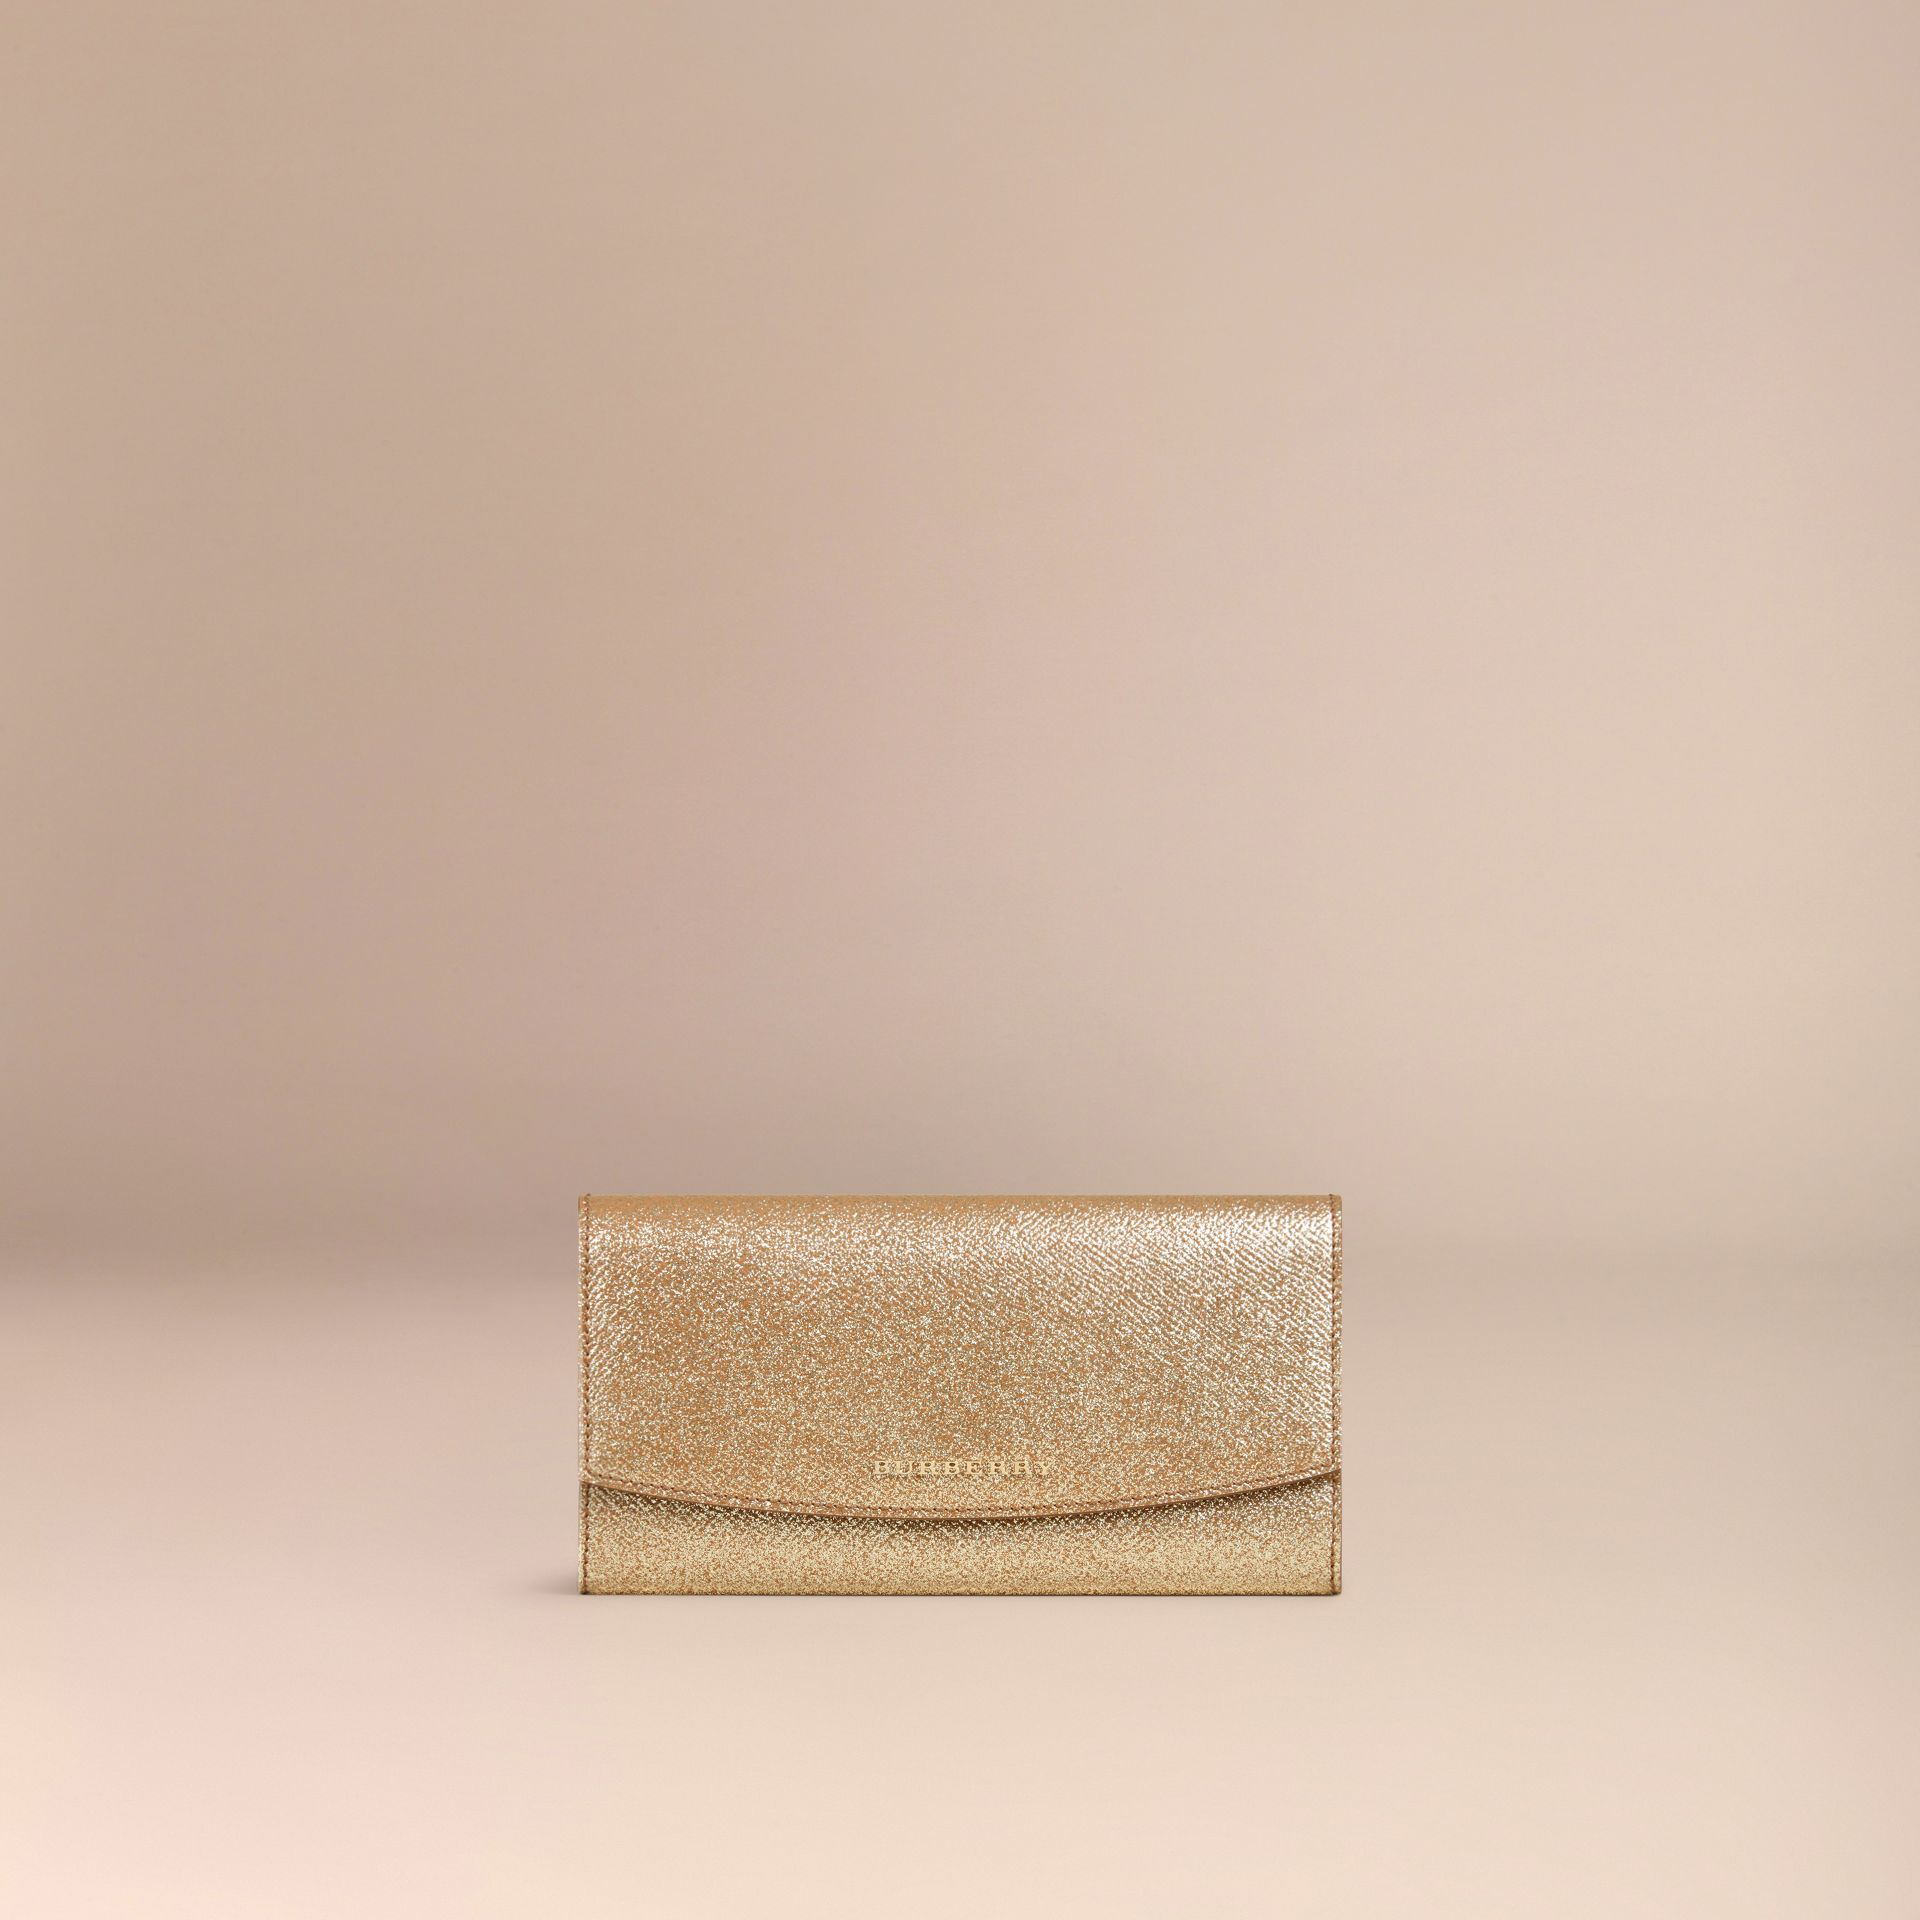 Camel / gold Glitter Patent London Leather Continental Wallet Camel / Gold - gallery image 3